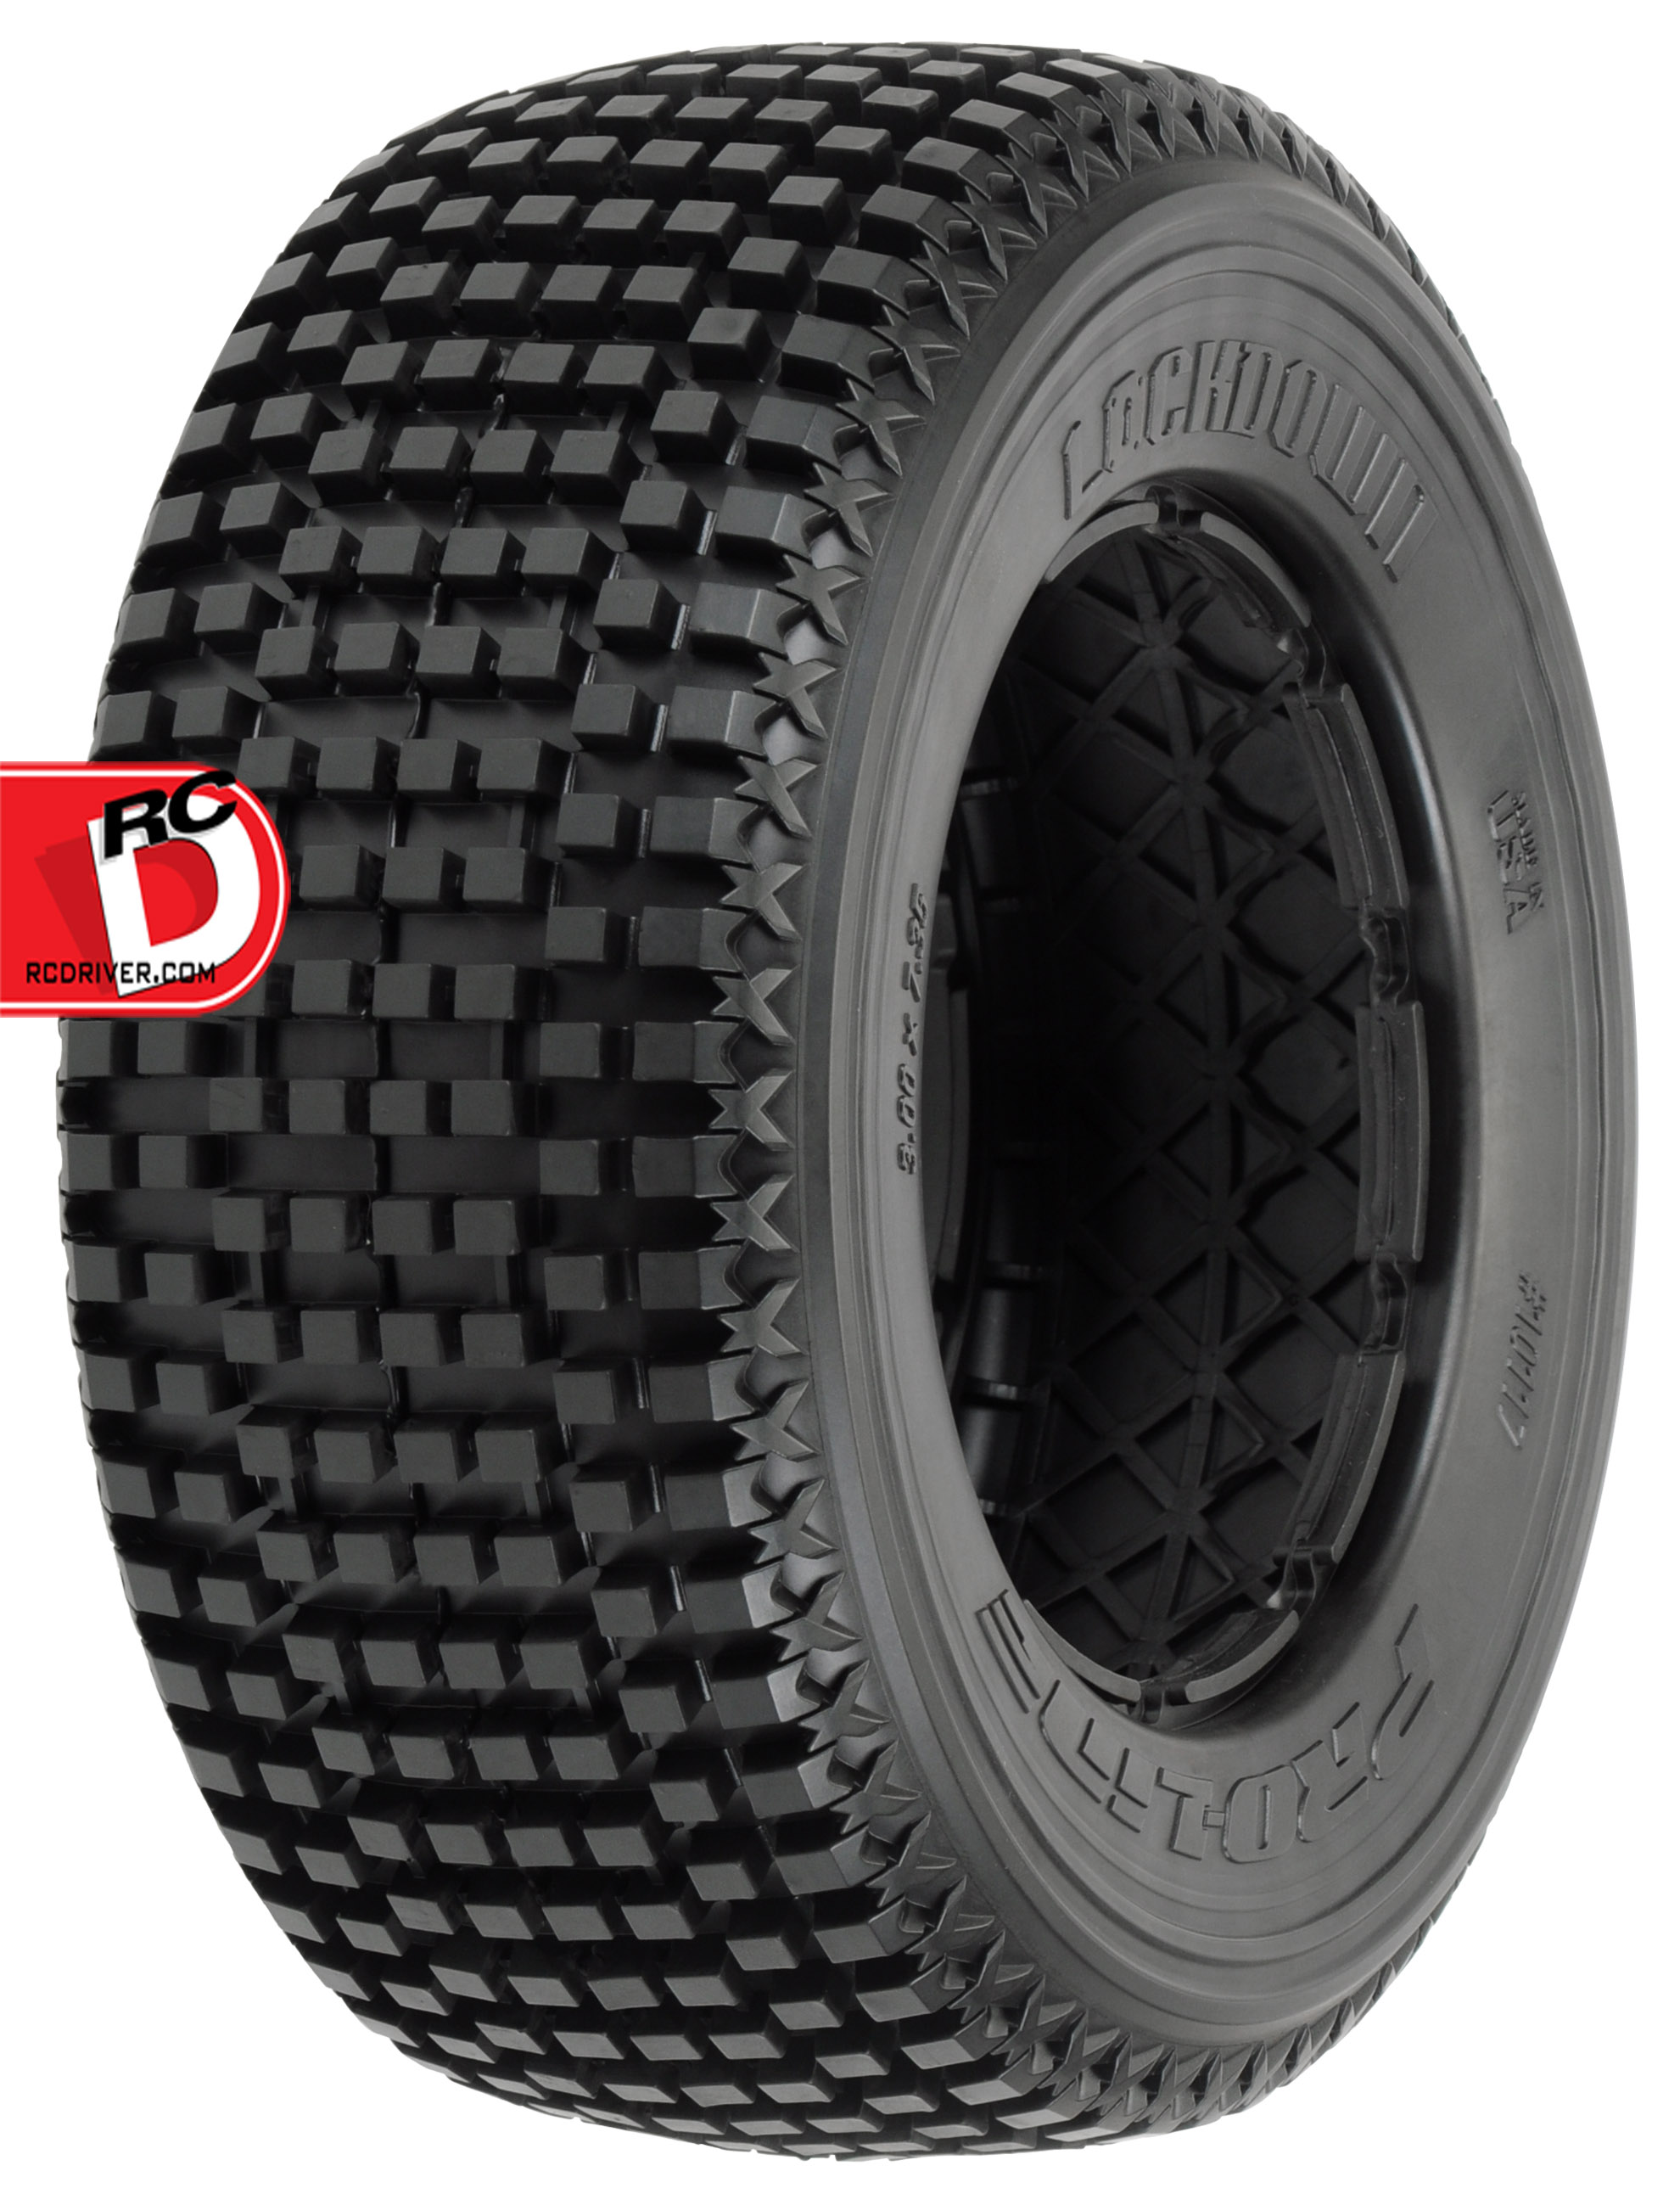 LockDown XTR Tires for the Baja 5SC or Losi 5ive-T